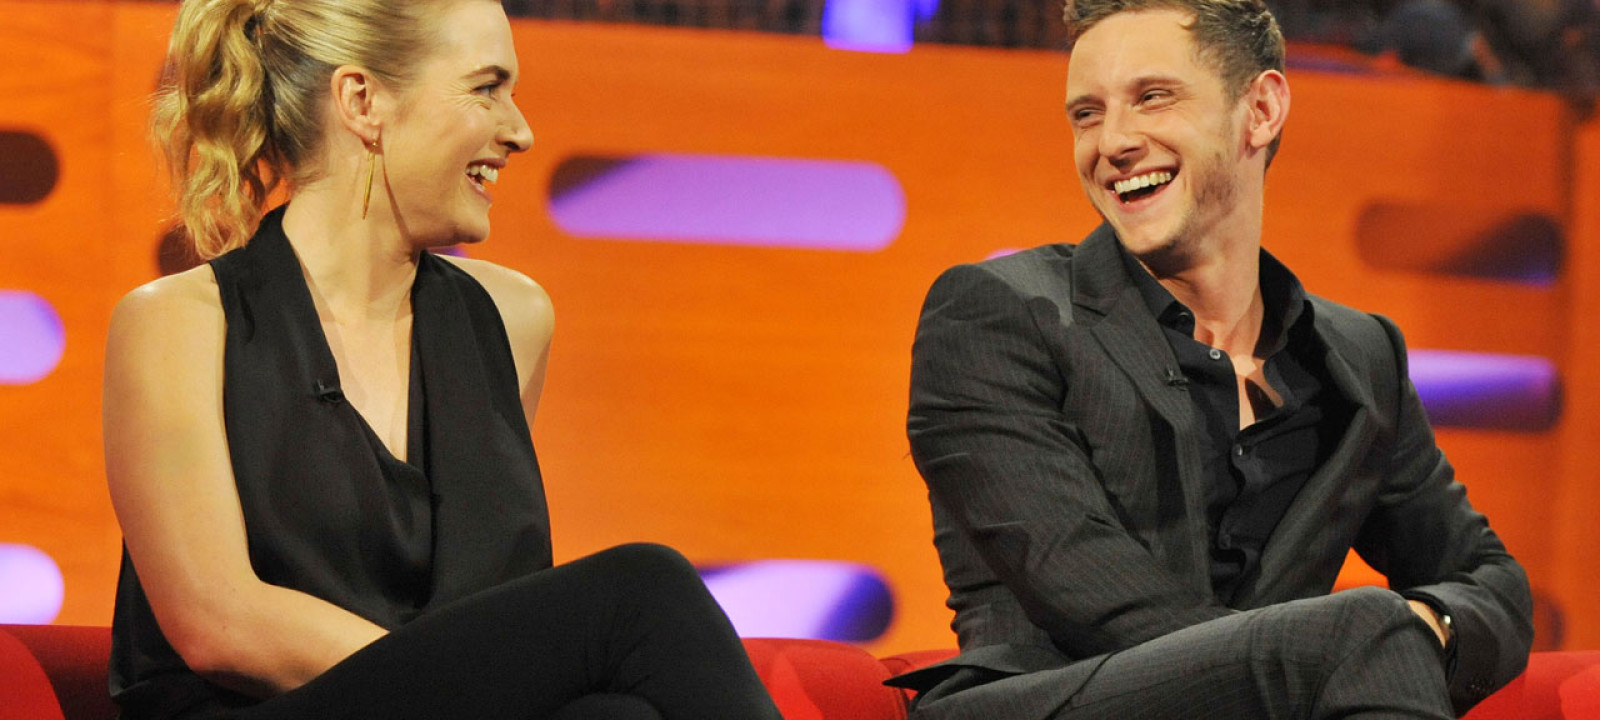 thegrahamnortonshow_photo_s10_e01_02_web